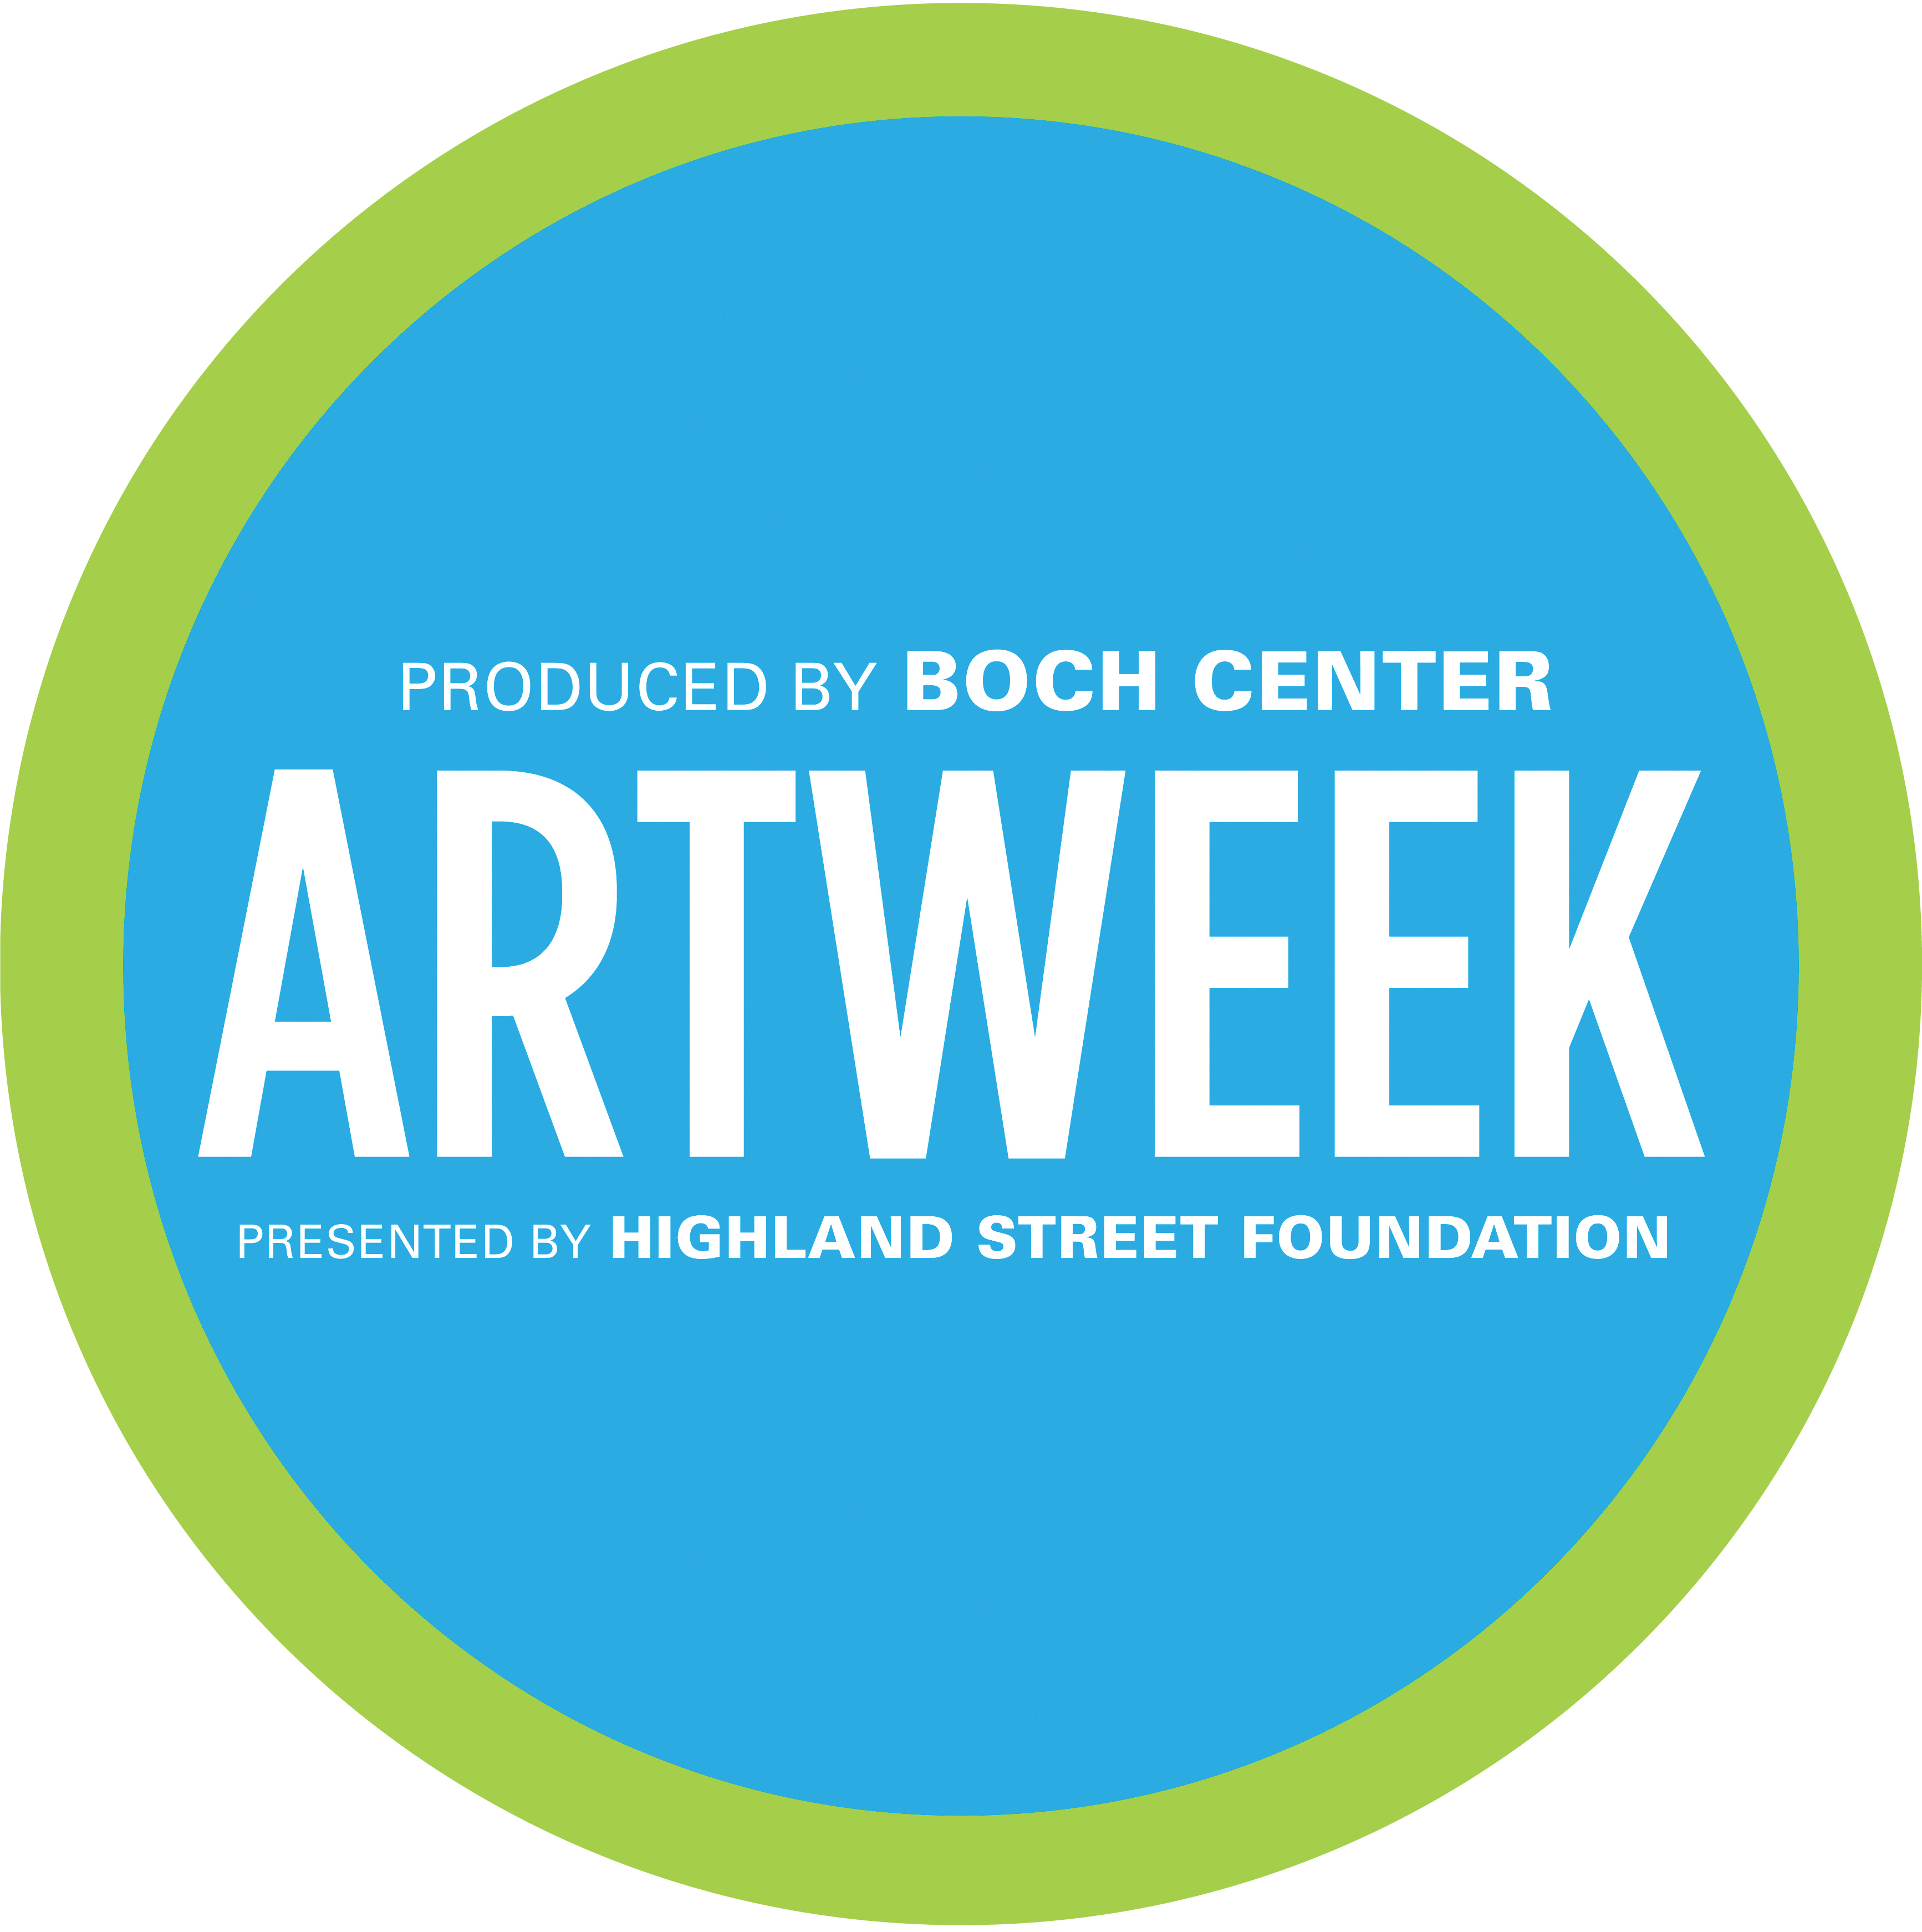 ArtWeekLogo